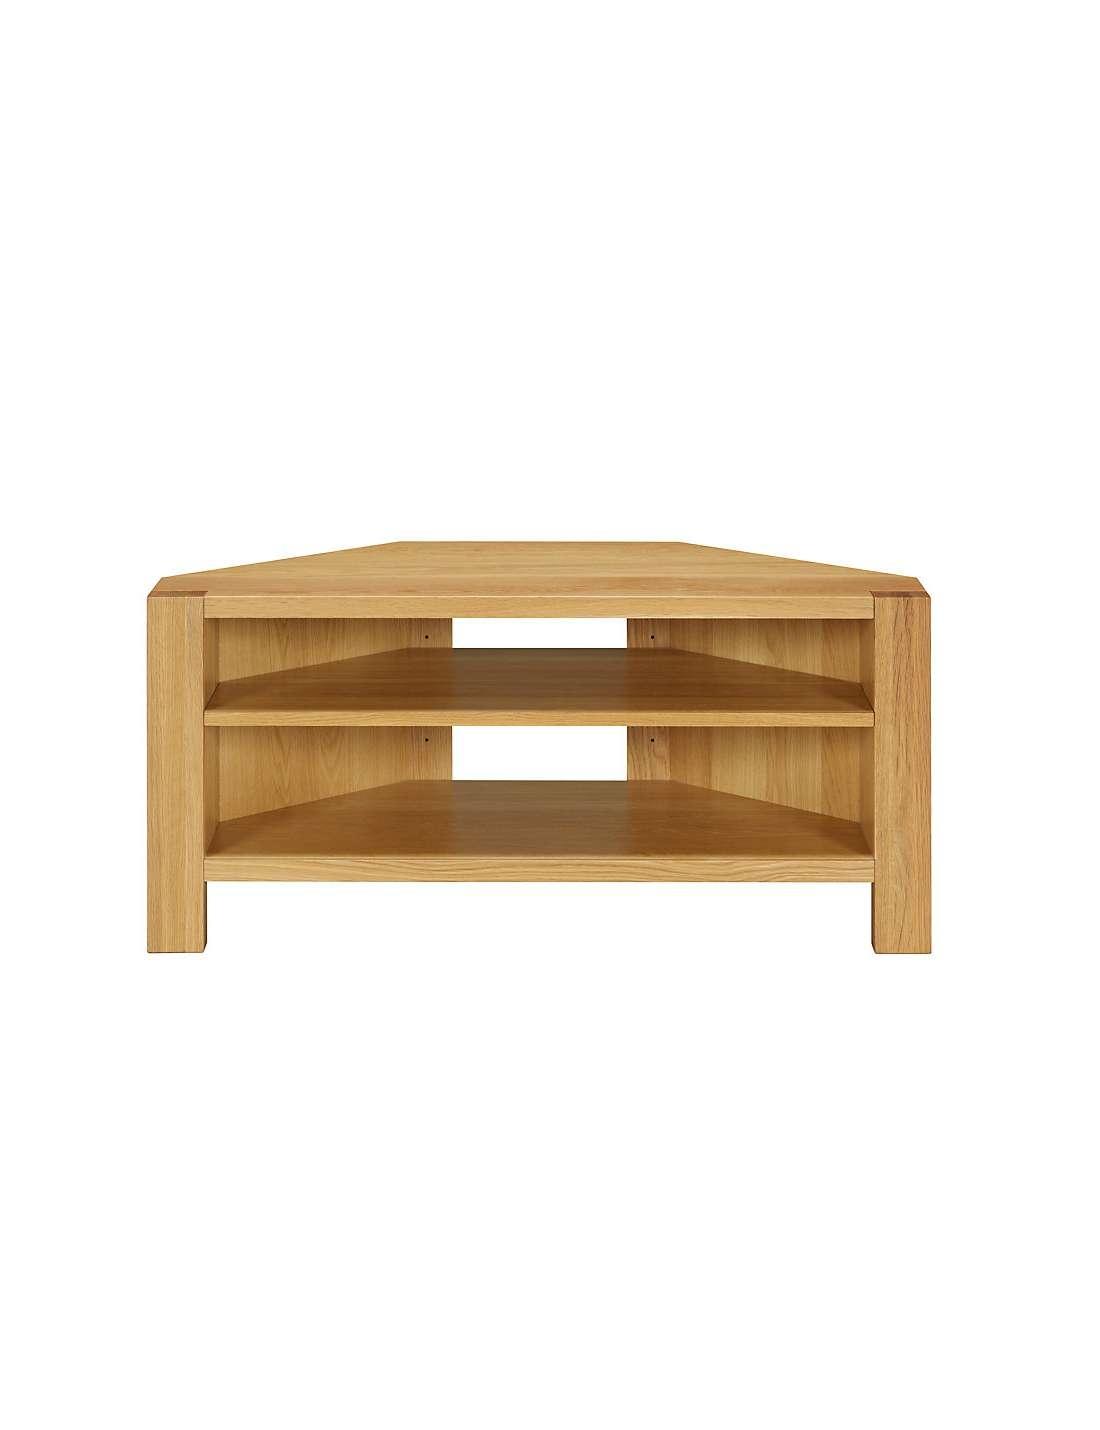 Oak Corner Tv Stands Uk | Home Design Ideas Pertaining To Corner Wooden Tv Stands (Gallery 7 of 15)